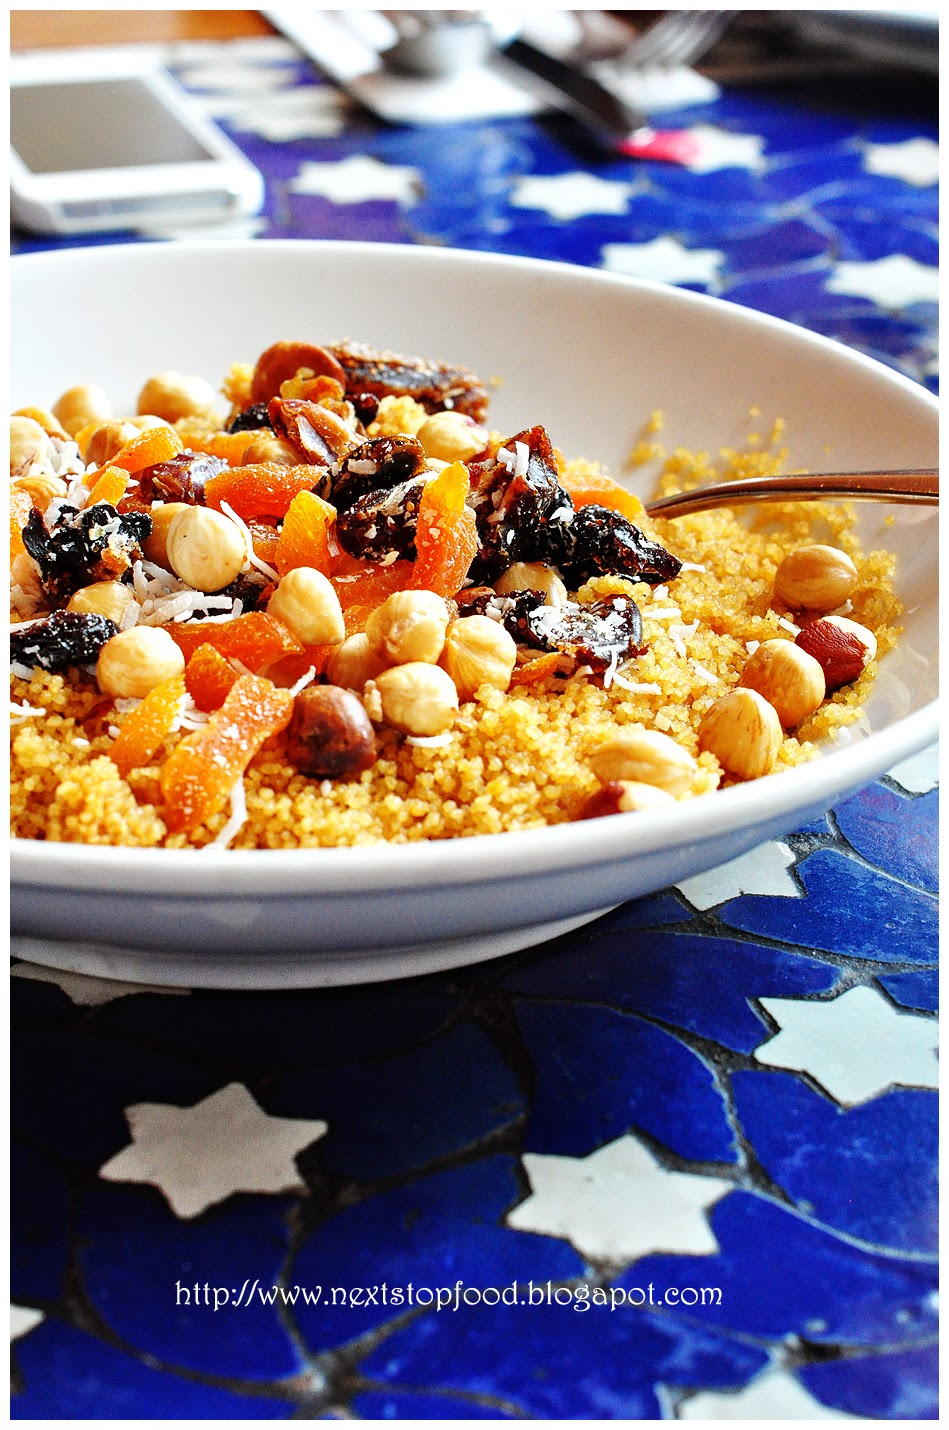 Sweet Couscous with Nuts, Dried Fruits, Stewed Rhubarb, Cardamom Milk